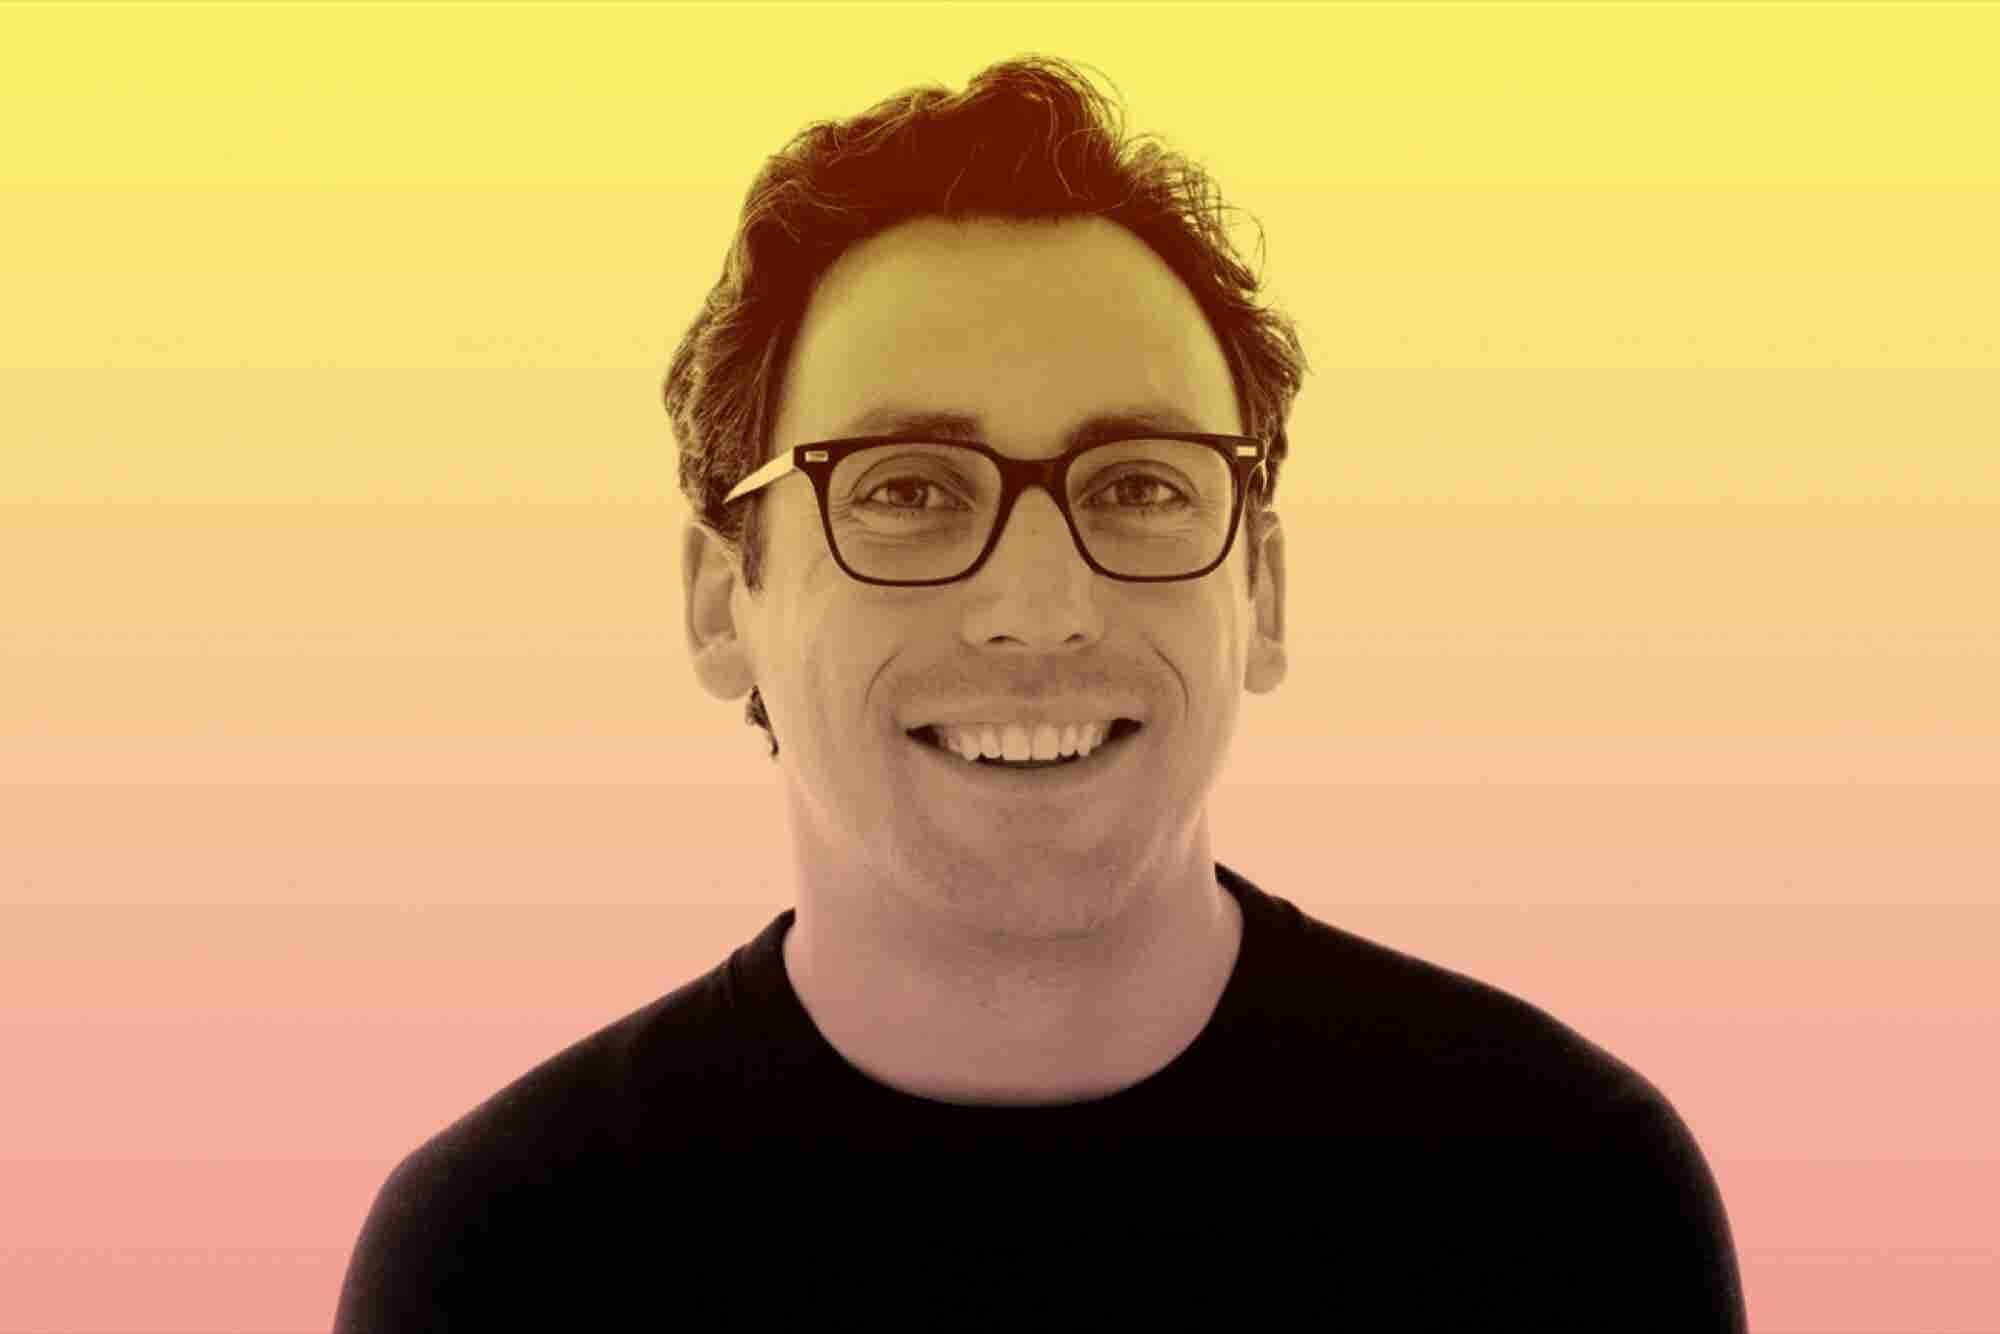 Warby Parker Co-Founder On the Next Generation of Social Entrepreneurship